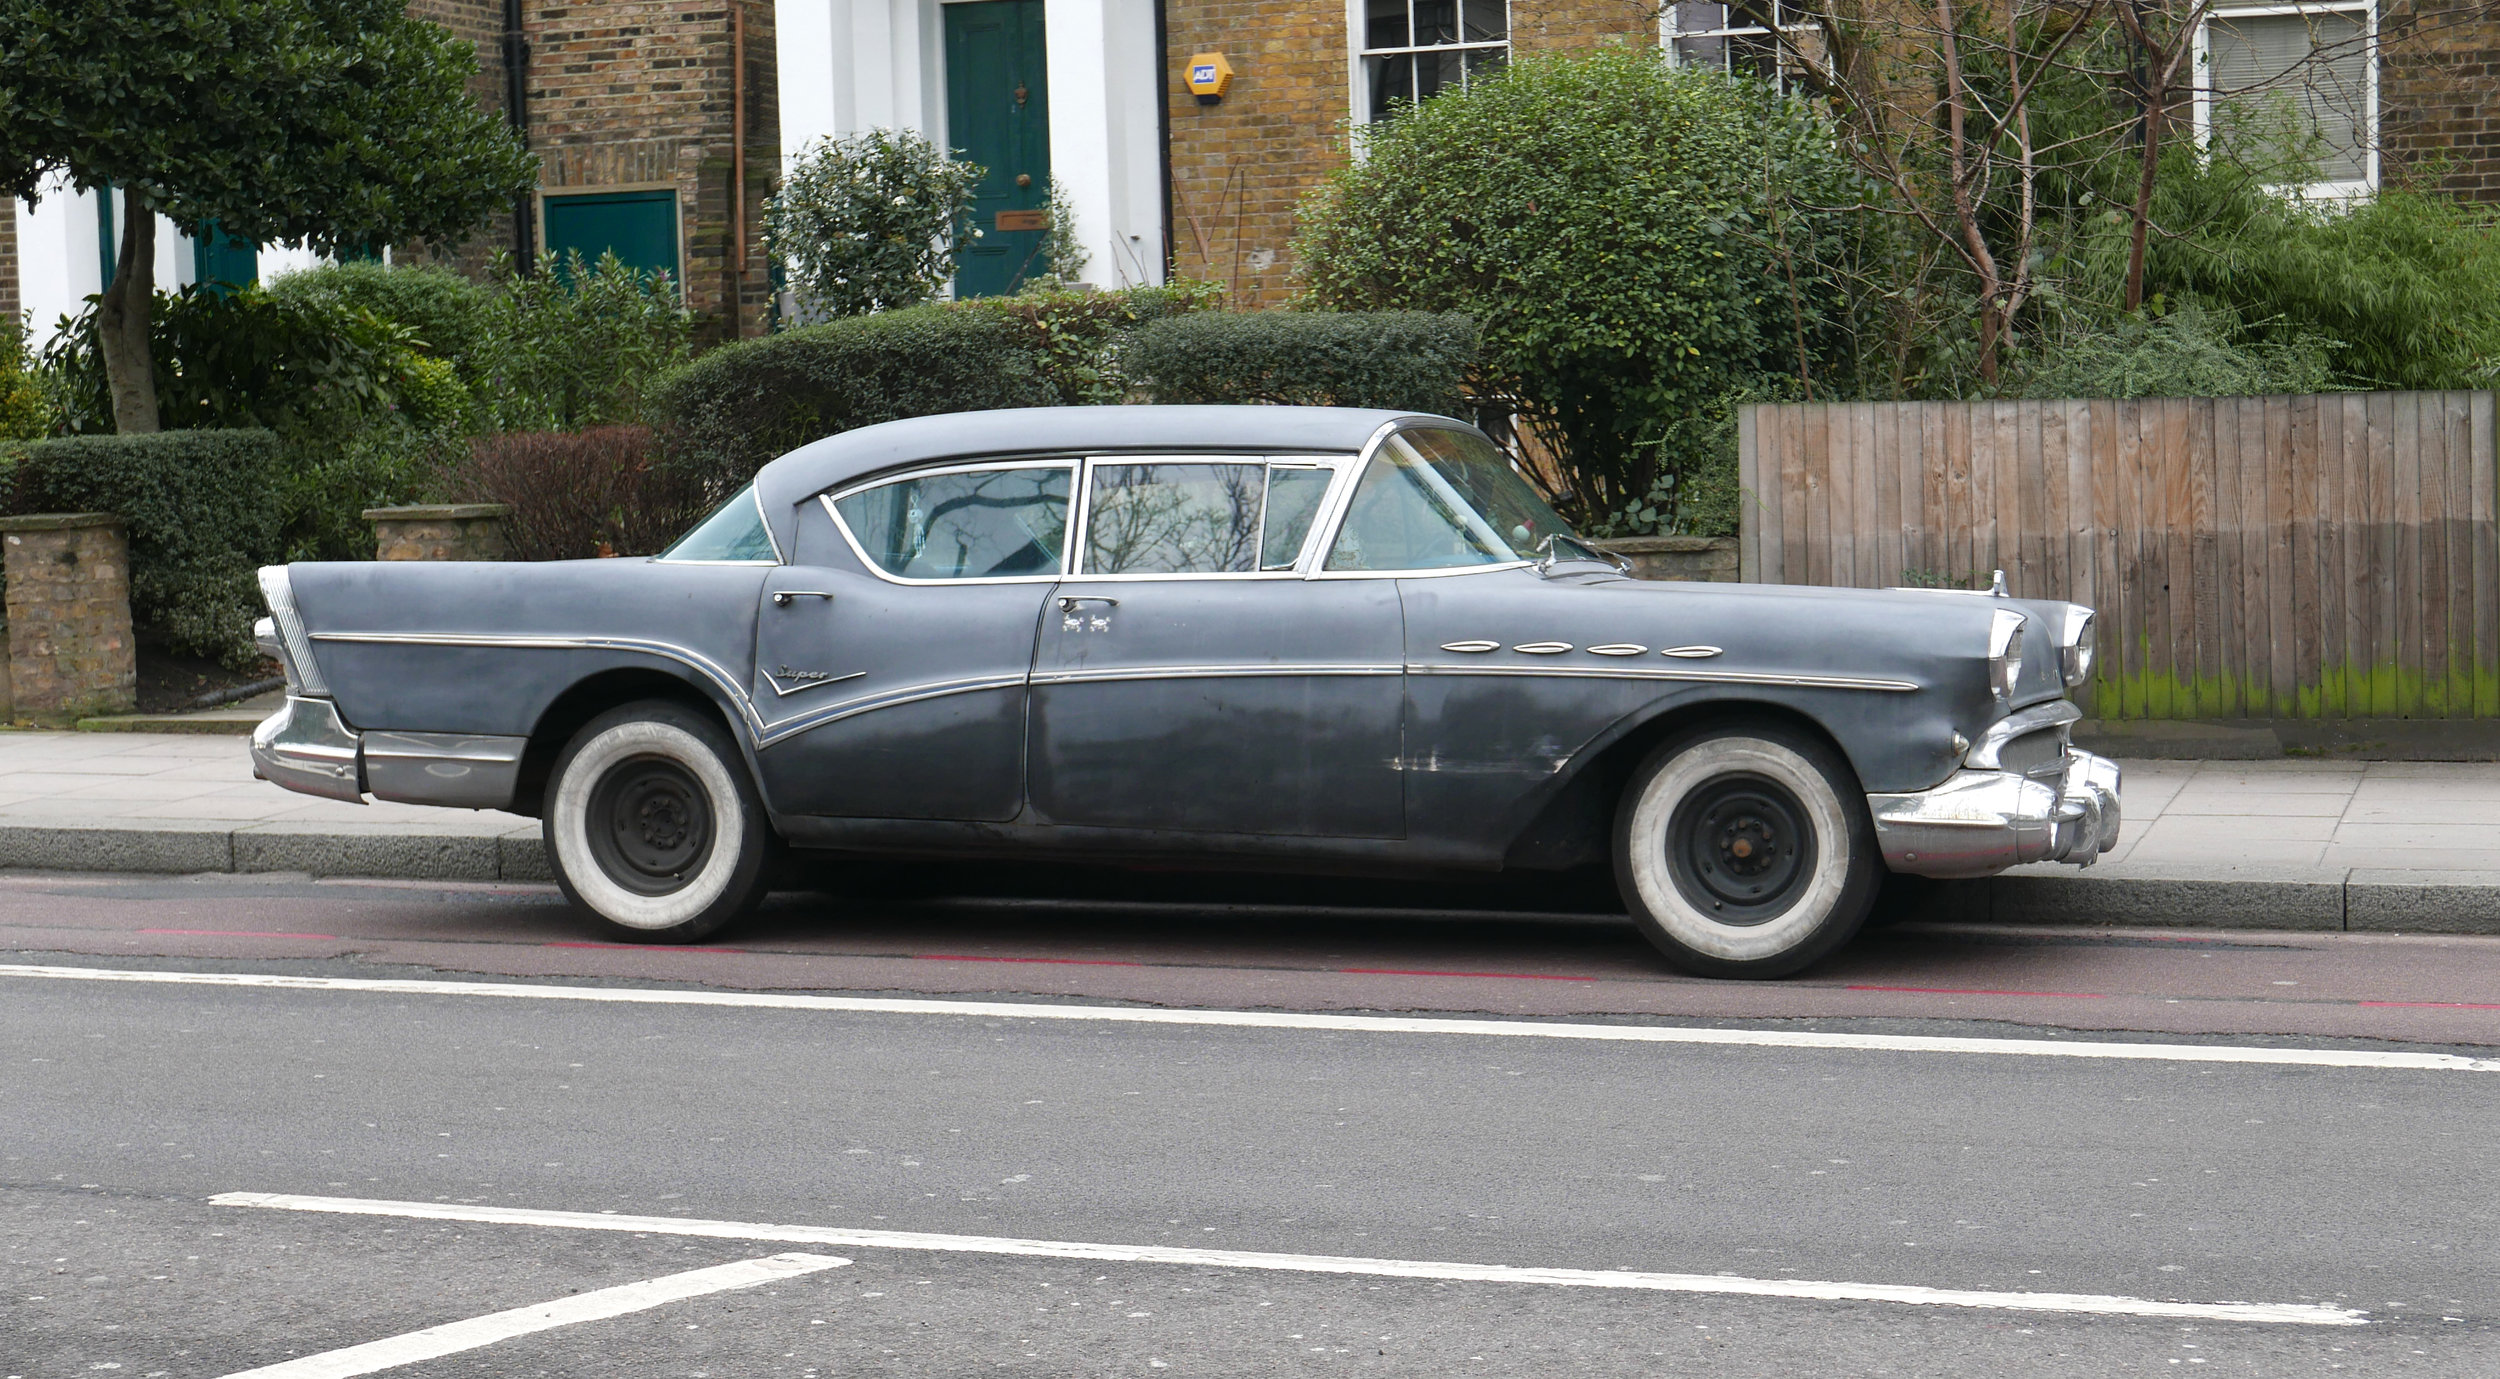 BUICK in Camden Rd (Feb 10 2018) 027 - Copy.jpg